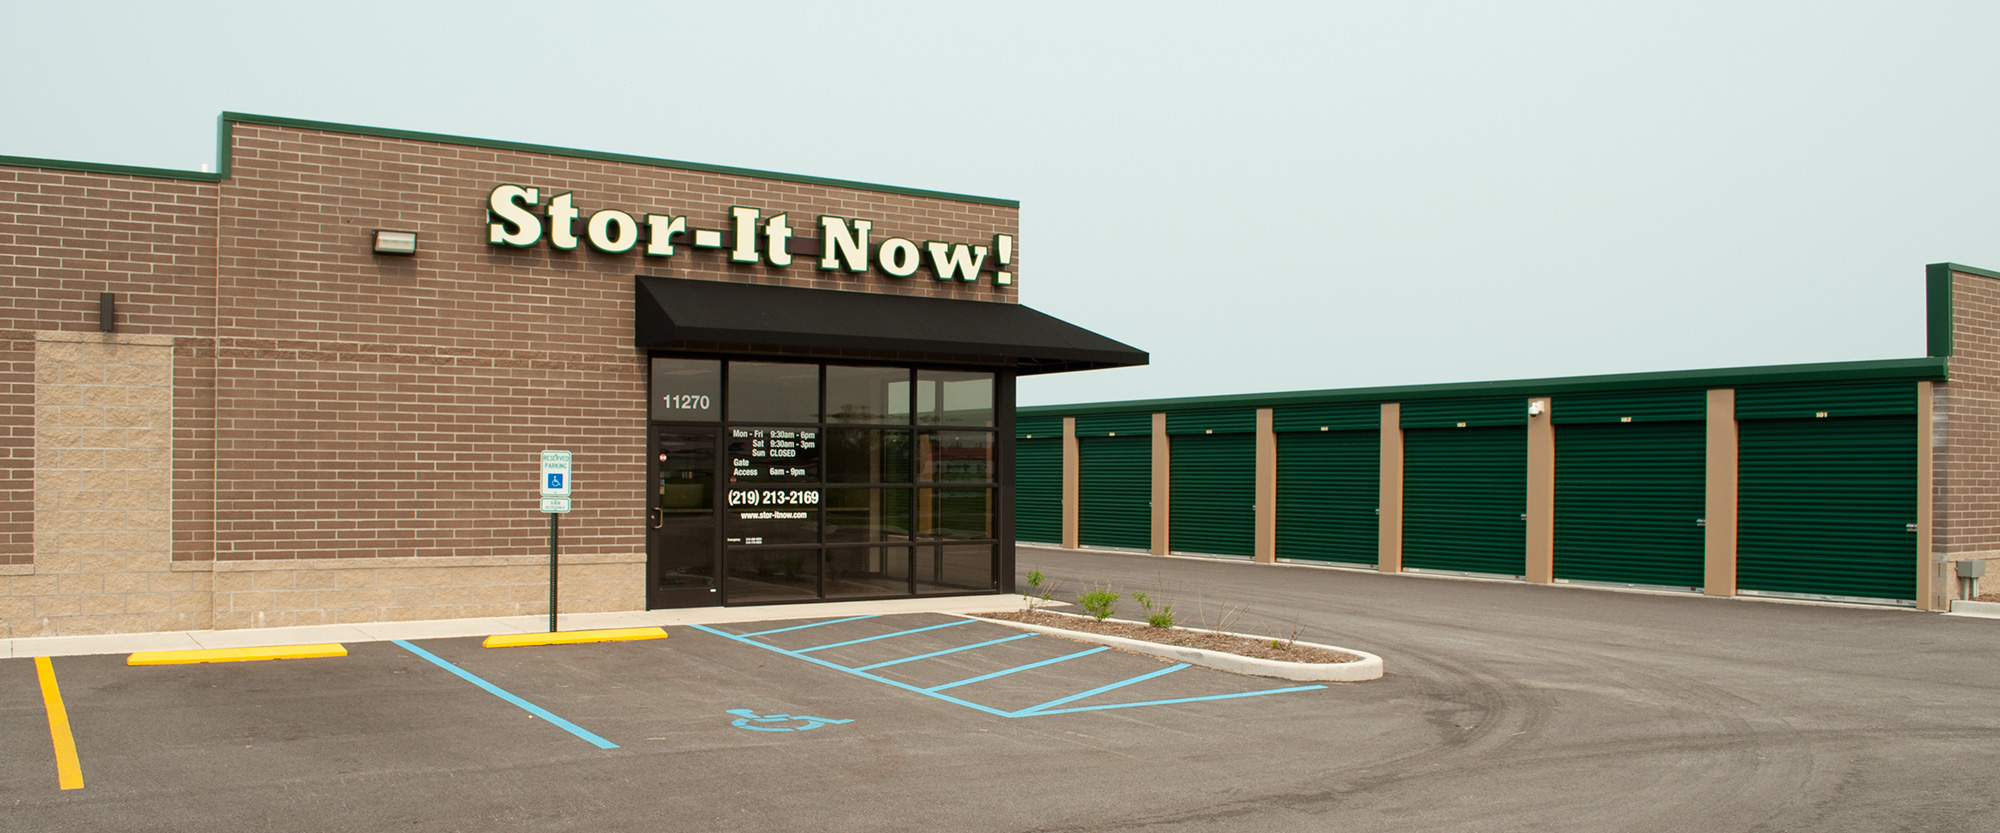 Stor-It Now Crown Point Self Storage Facility